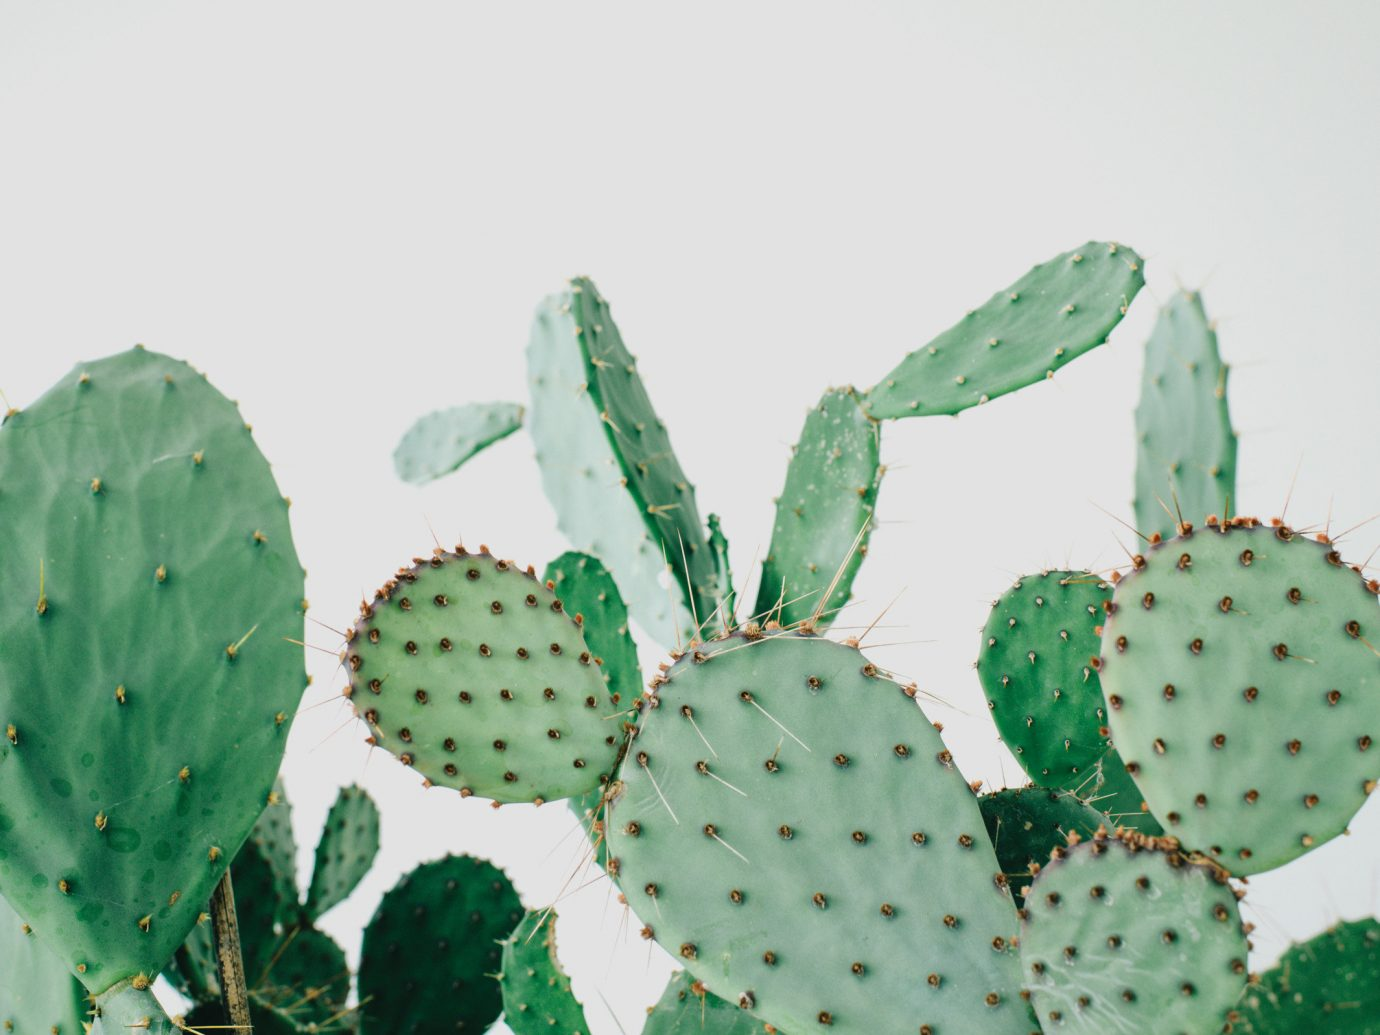 Offbeat Style + Design Travel Trends cactus indoor plant barbary fig nopal prickly pear flowering plant eastern prickly pear nopalito thorns spines and prickles caryophyllales decorated plant stem